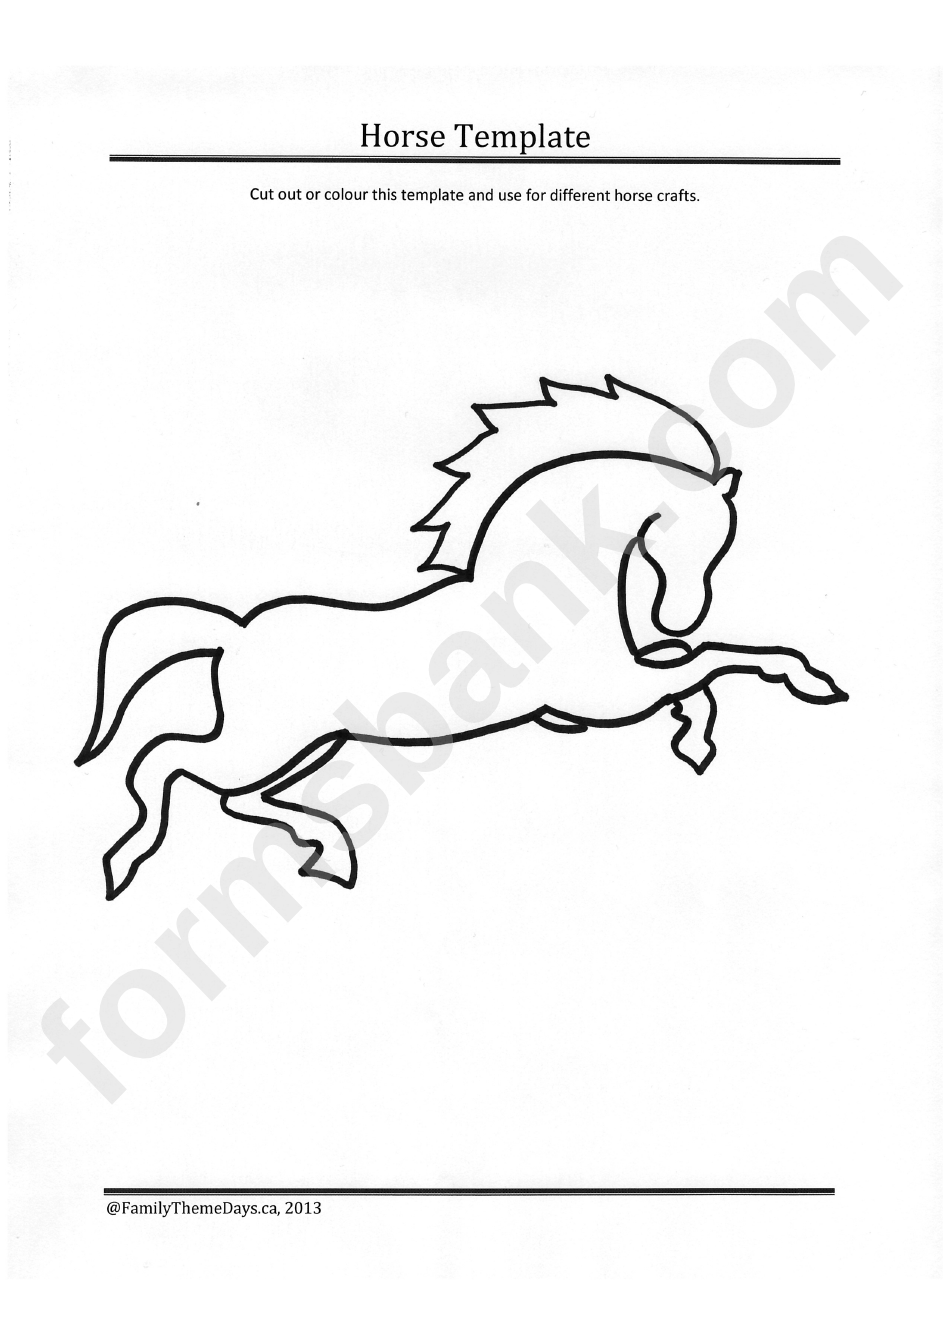 Running Horse Template Printable Pdf Download